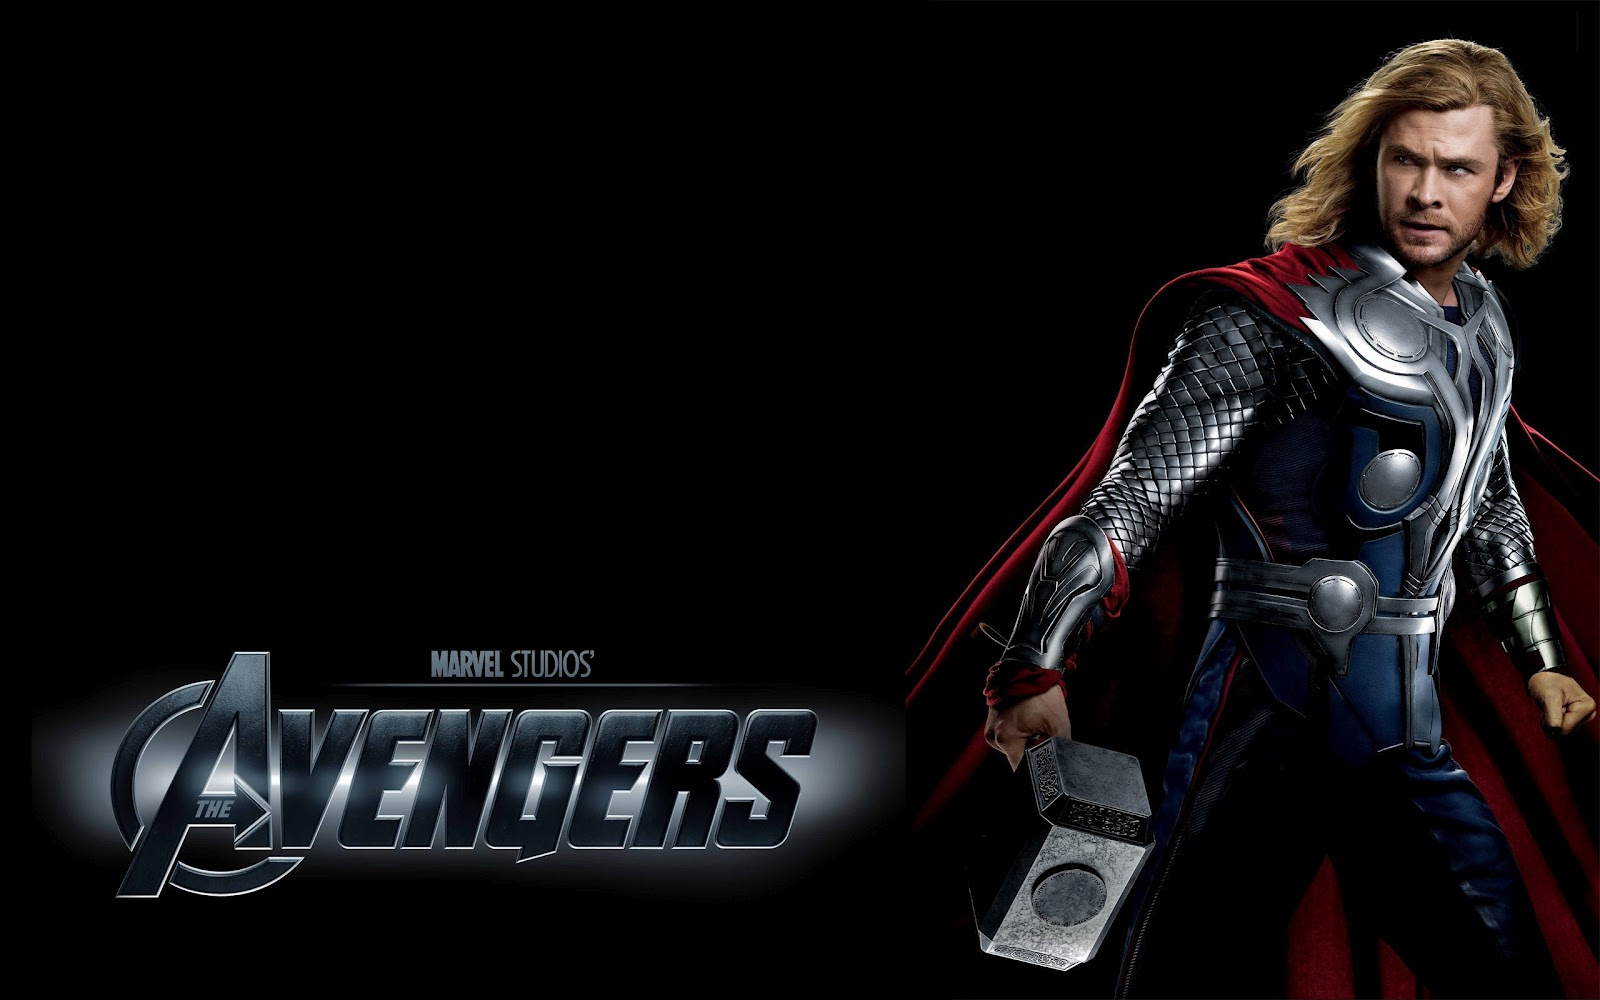 Anime Logo Wallpaper The Avengers All Characters Posters Hd Wallpapers Hd